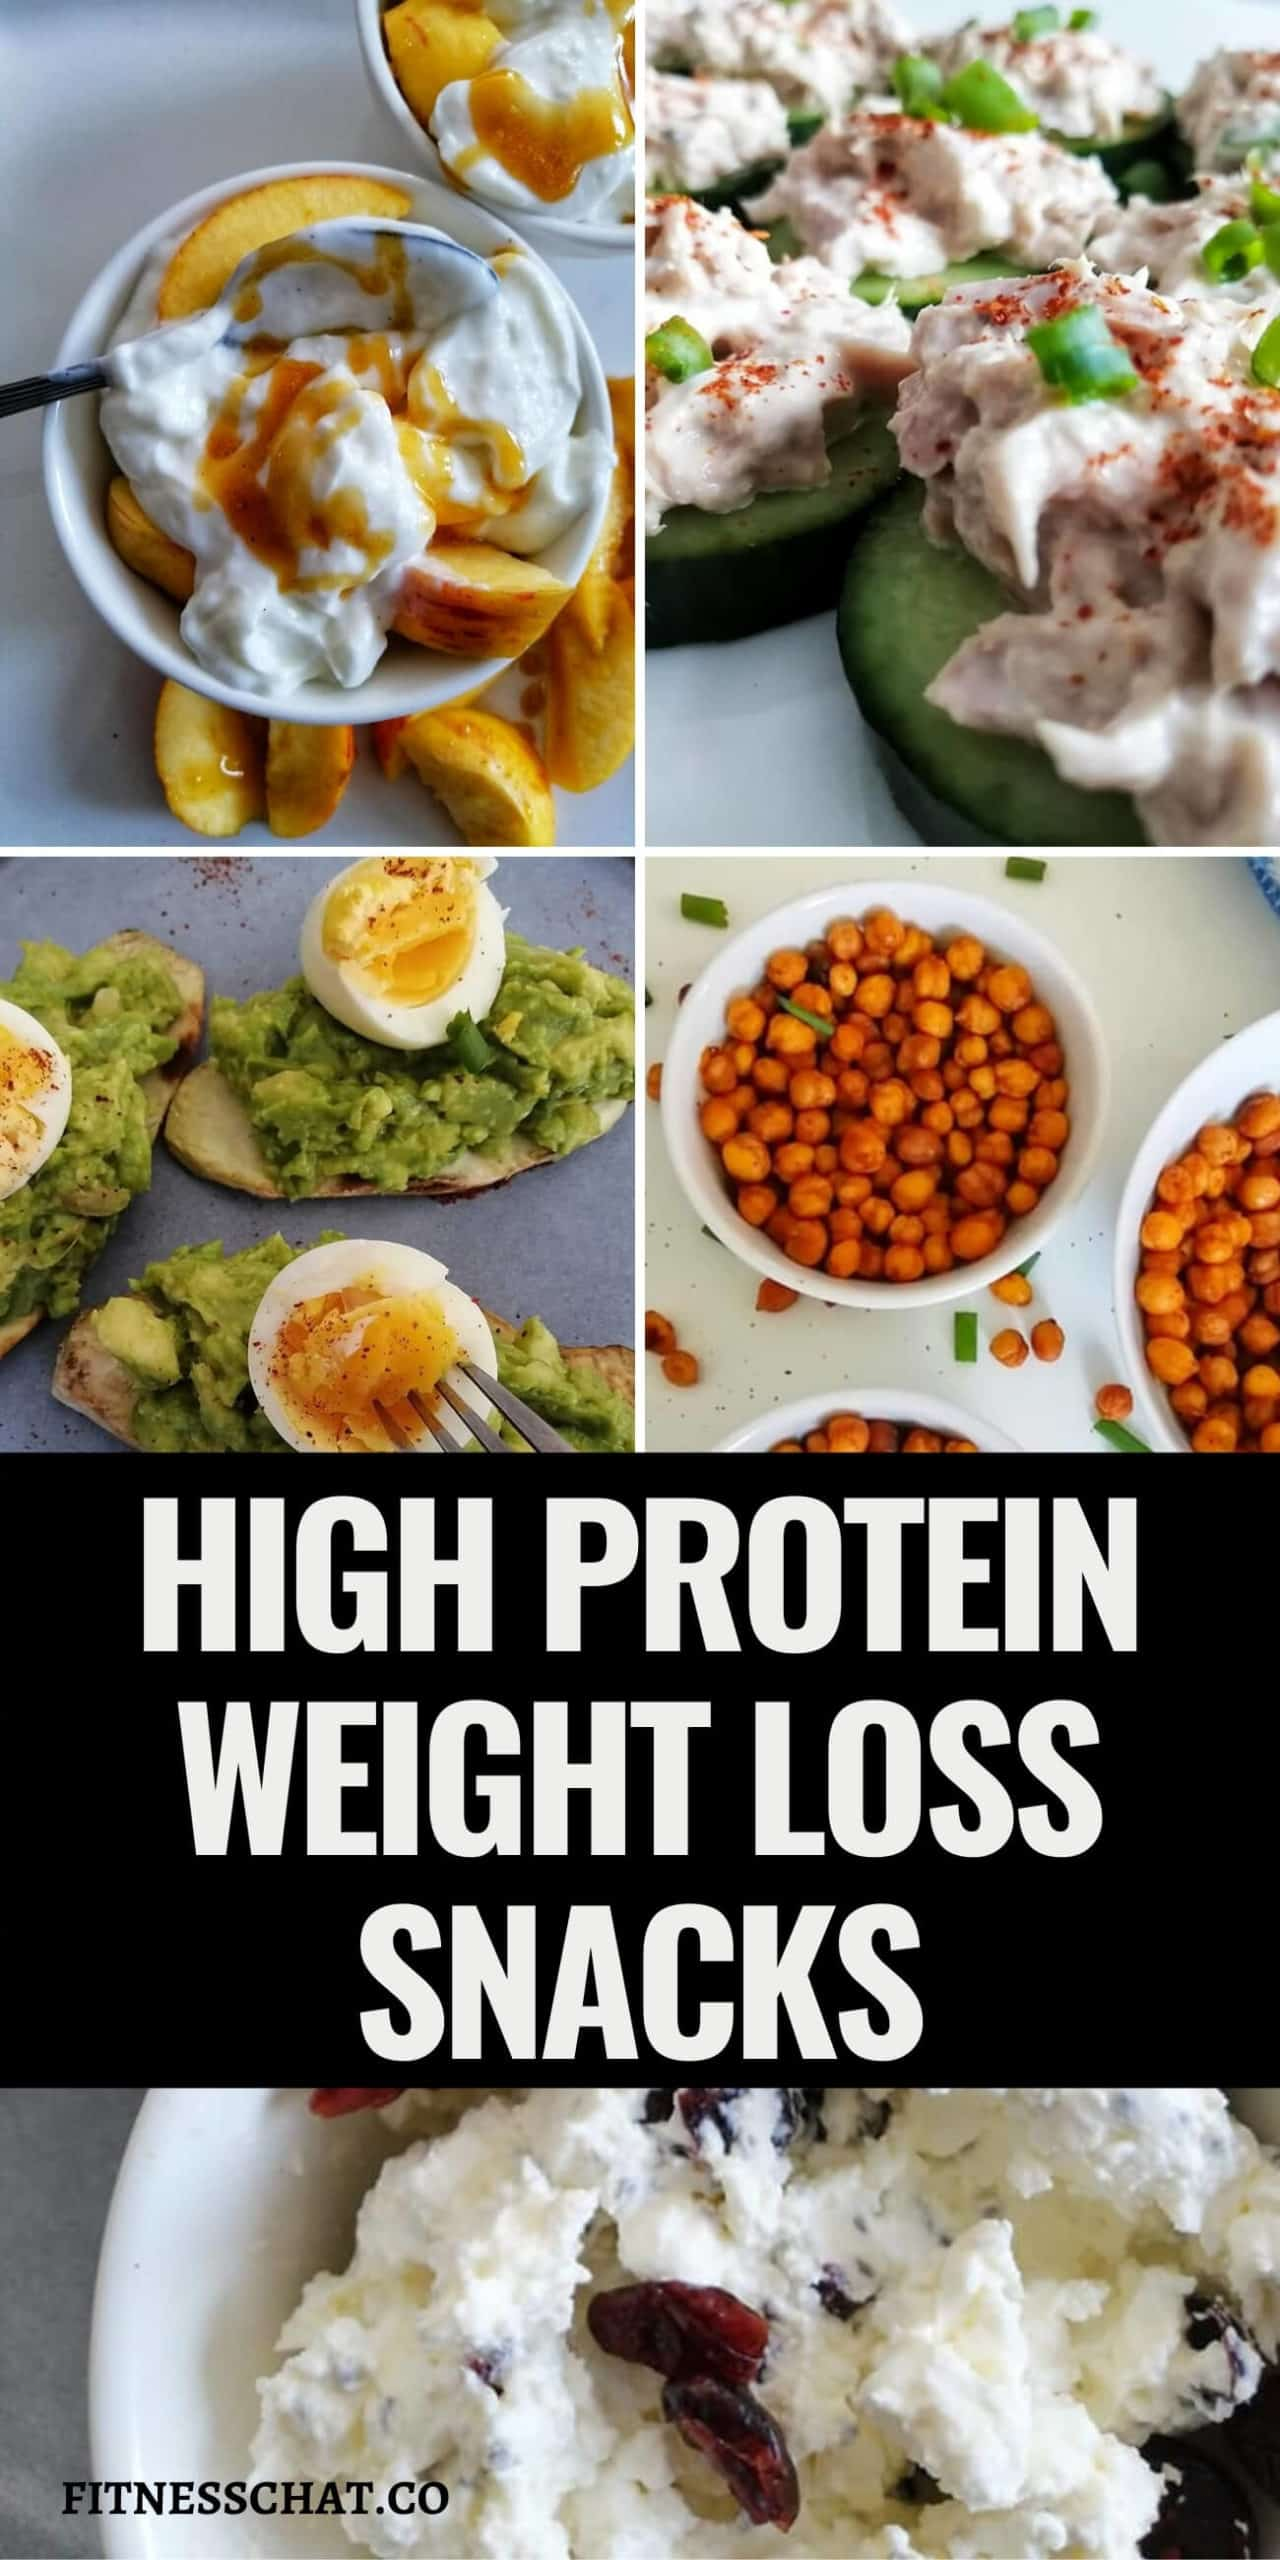 High protein snacks weight loss